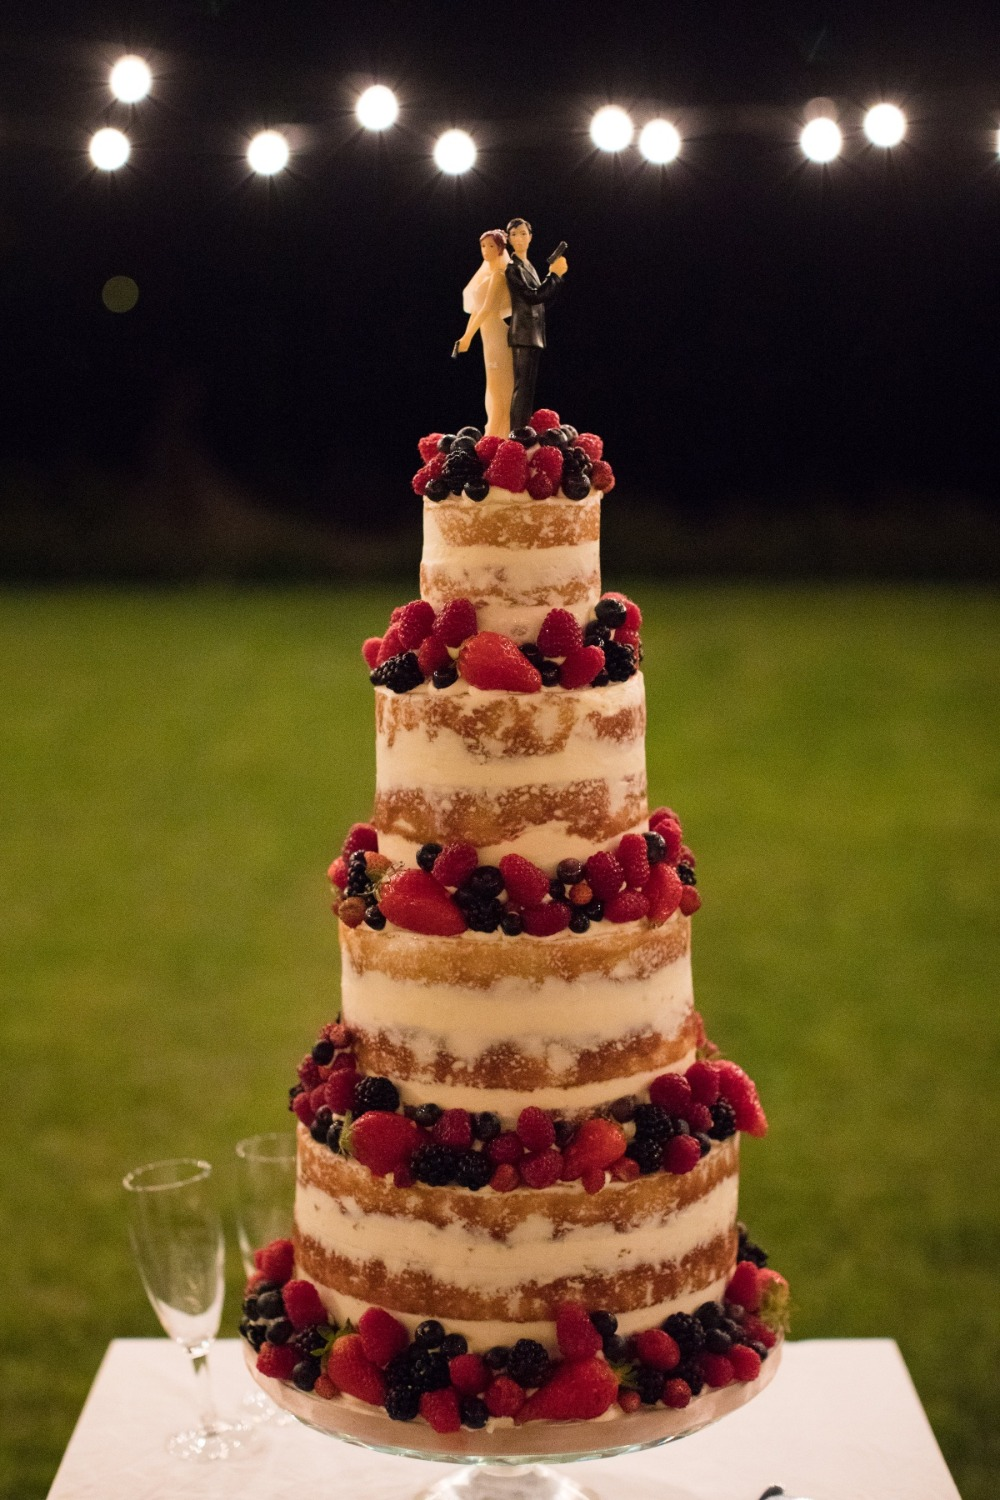 berry topped wedding cake with James Bond topper